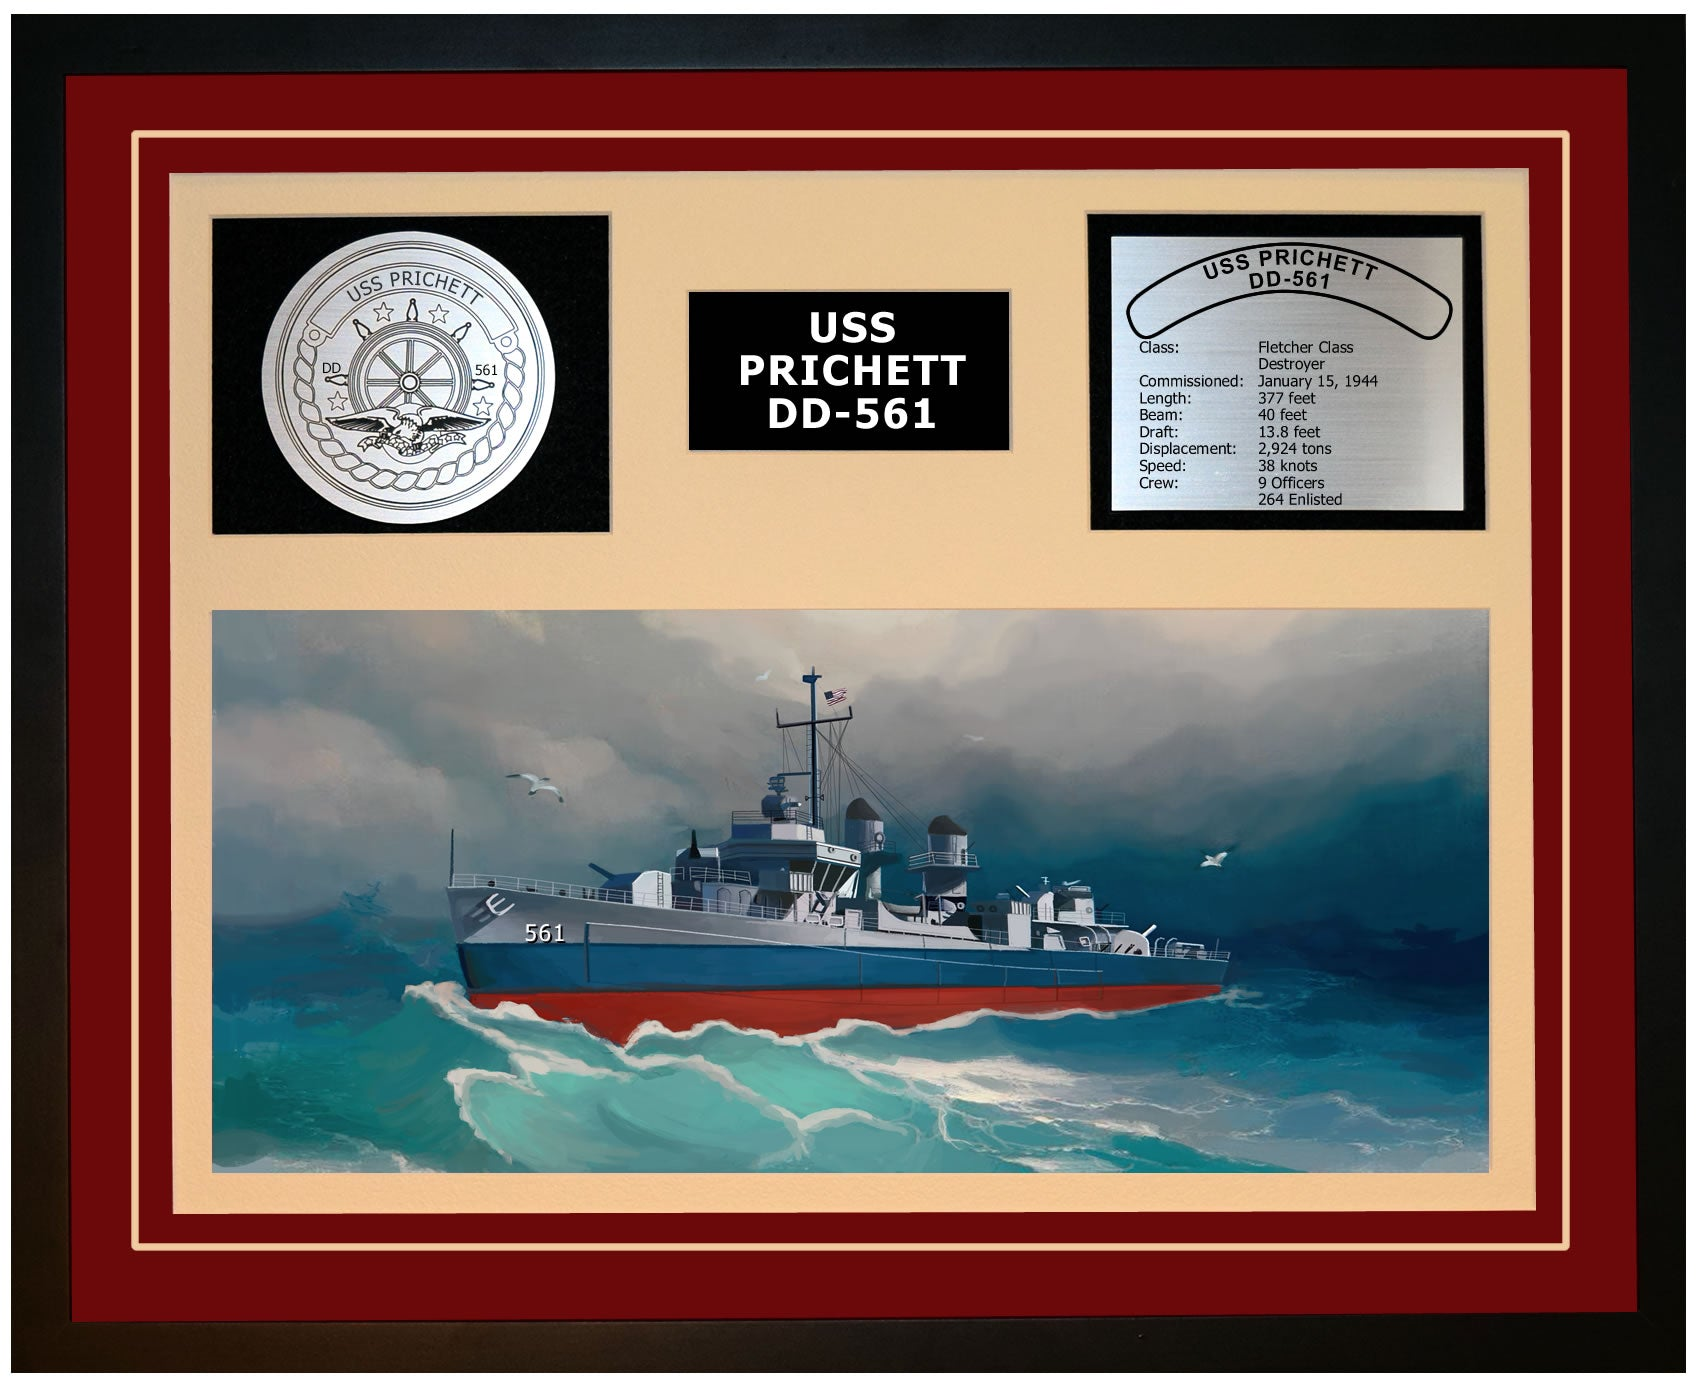 USS PRICHETT DD-561 Framed Navy Ship Display Burgundy